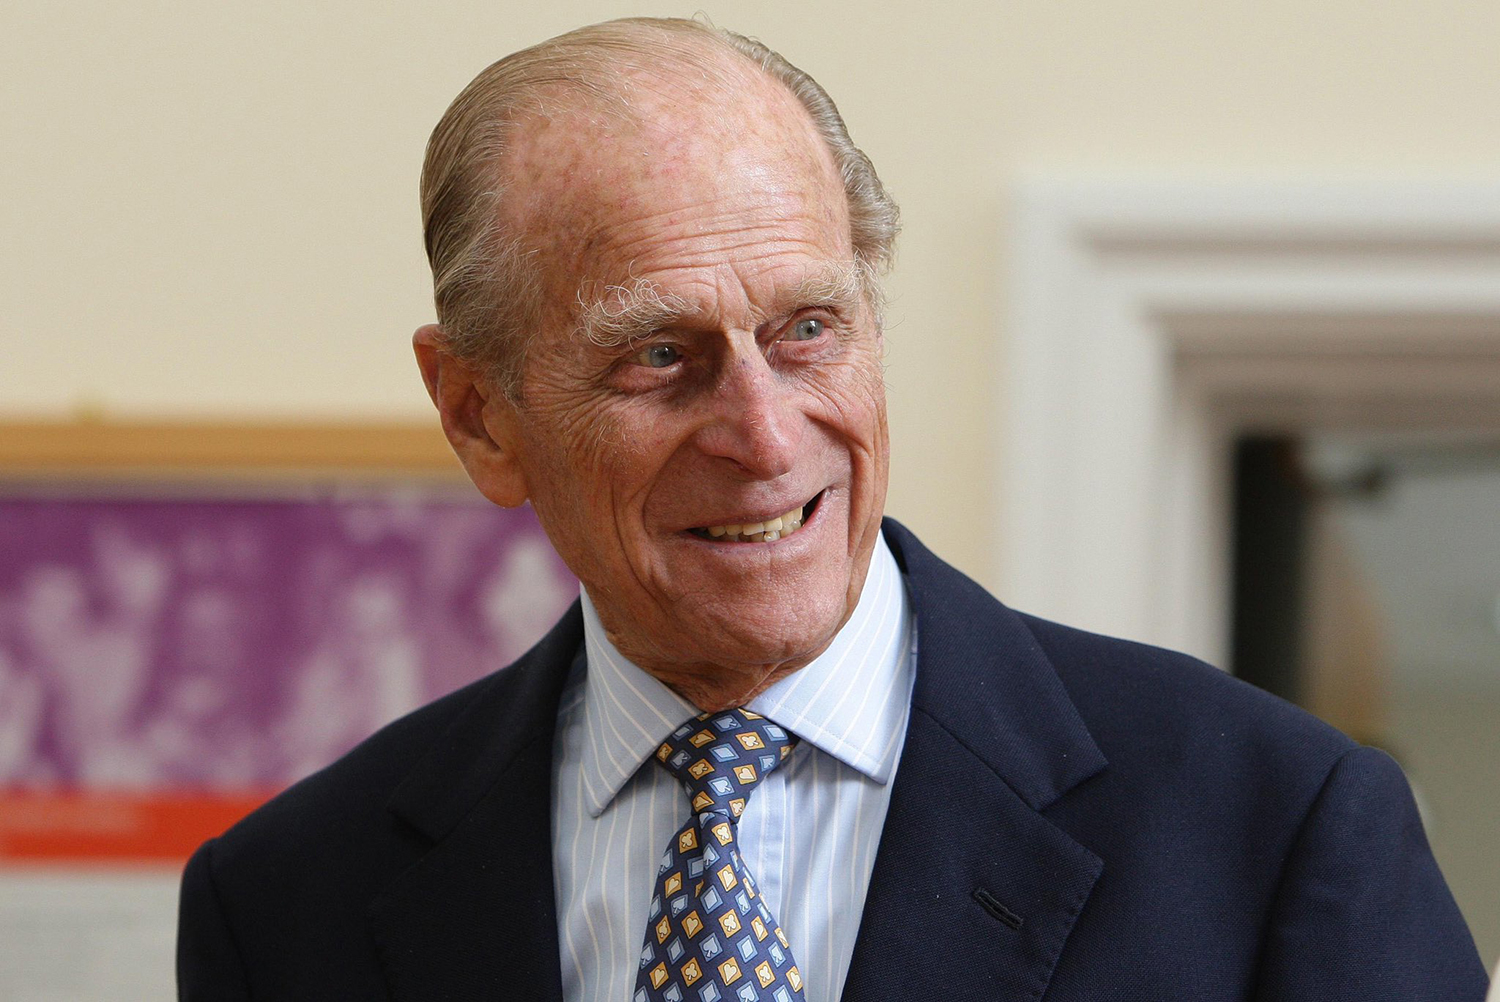 Prince Philip, 99, Issues Rare Statement to Wish Educators Happy Holidays